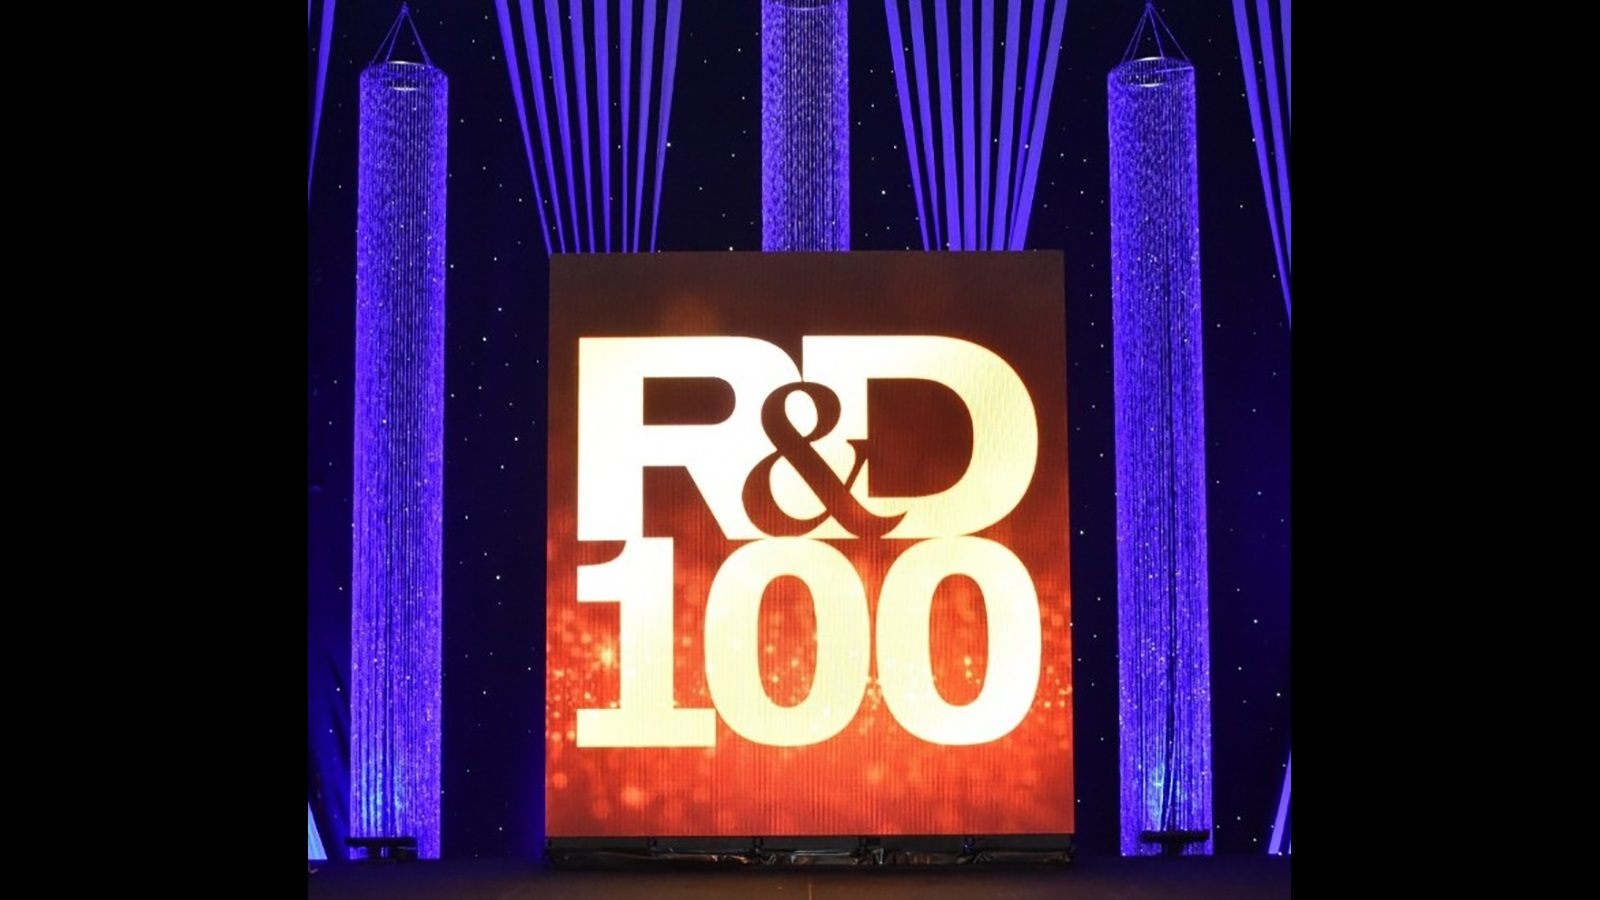 R&D 100 Awards Logo courtesy of R&D Magazine